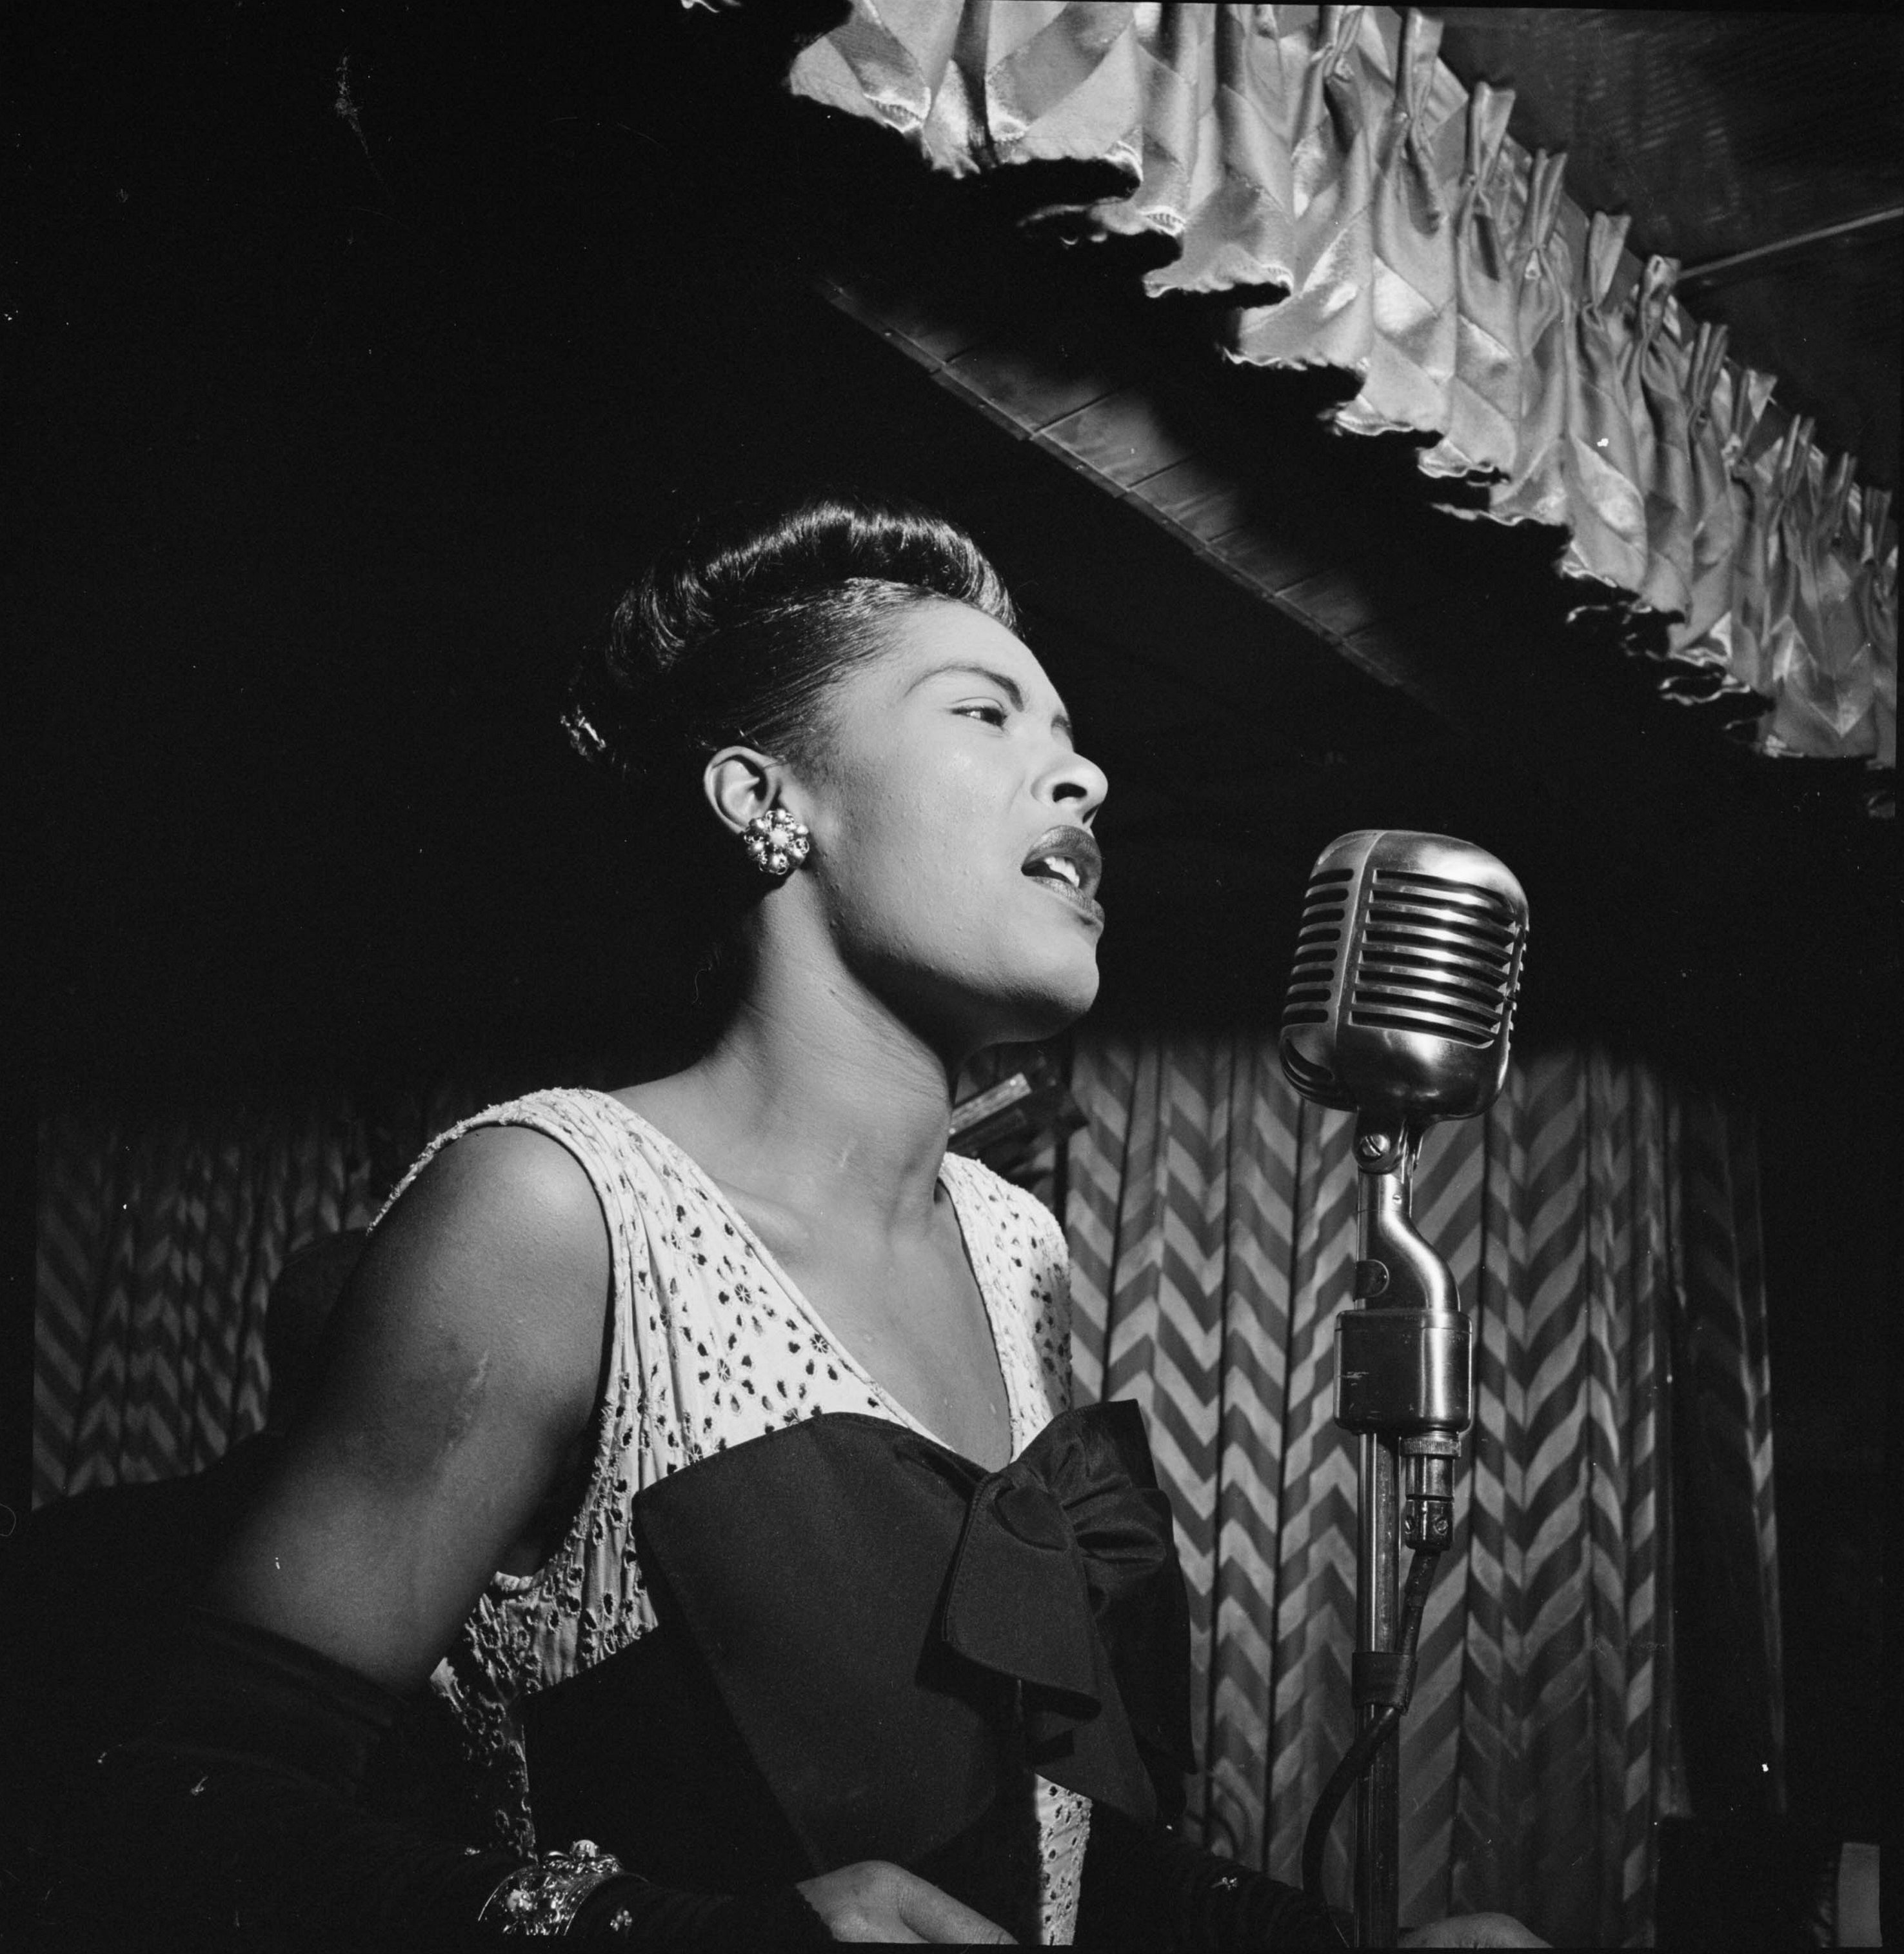 Billie Holiday performing at the Club Downbeat in Manhattan in 1947 | Source: Getty Images